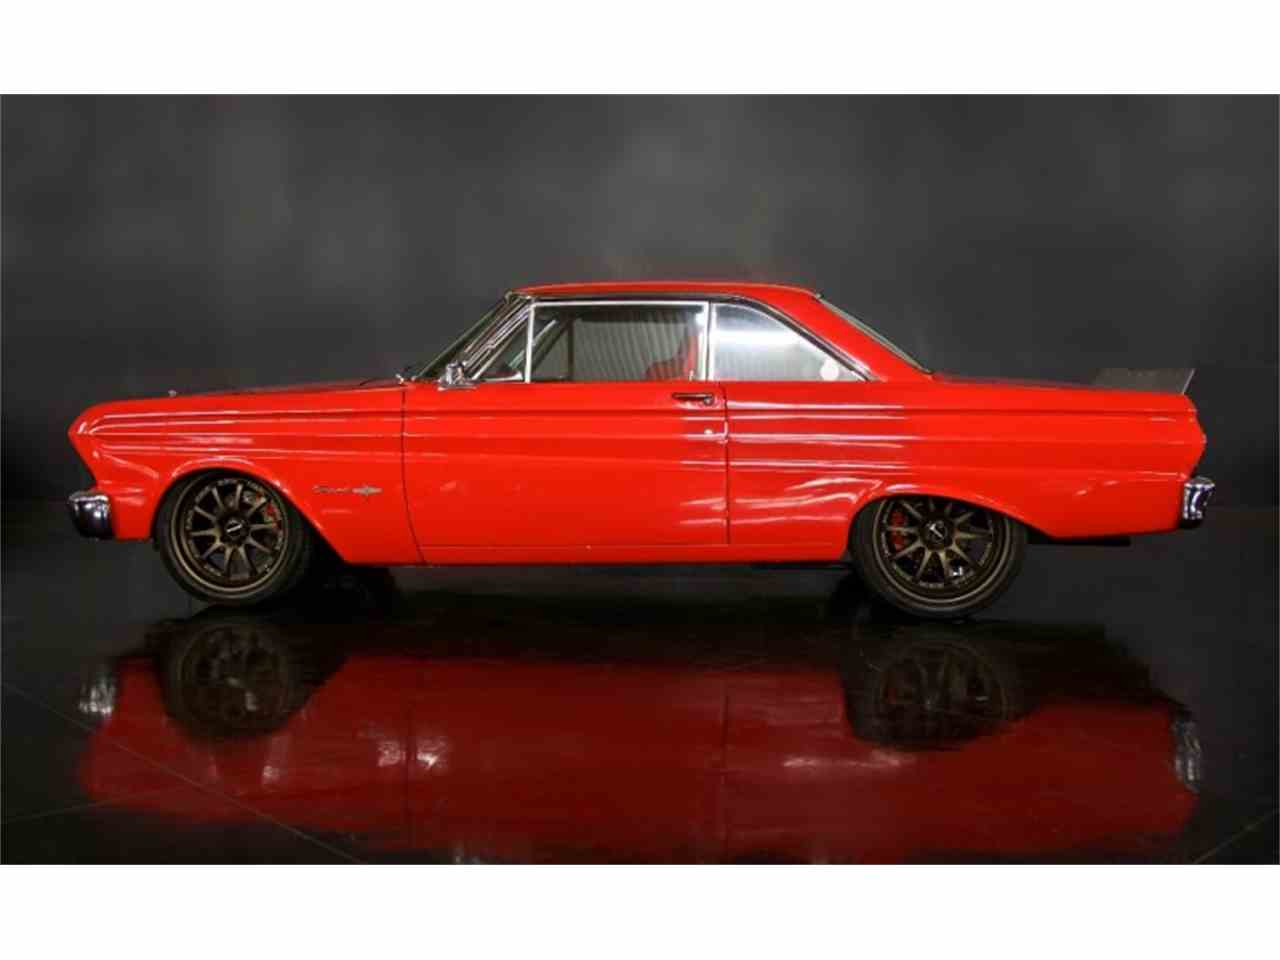 Large Picture of Classic '64 Ford Falcon located in Milpitas California - $52,194.00 - LSP9